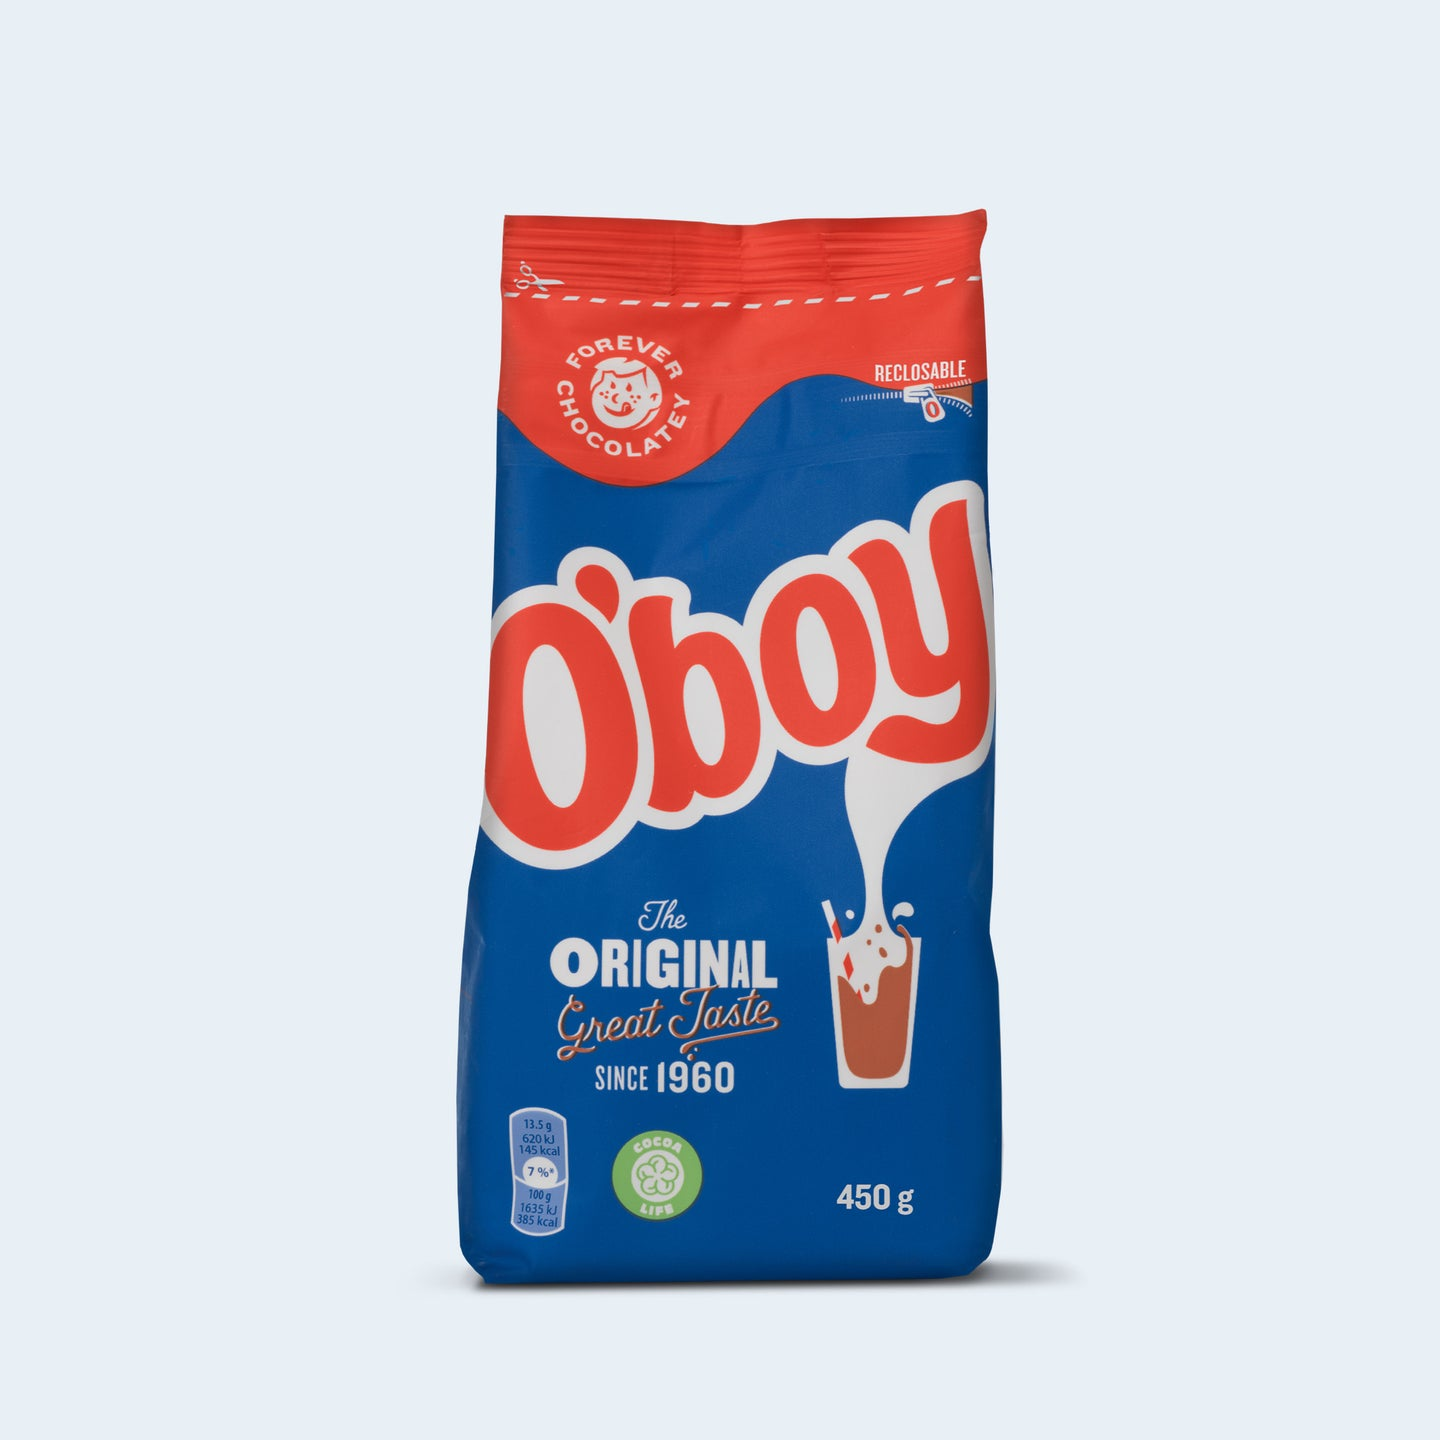 Oboy - Swedish Chocolate Powder